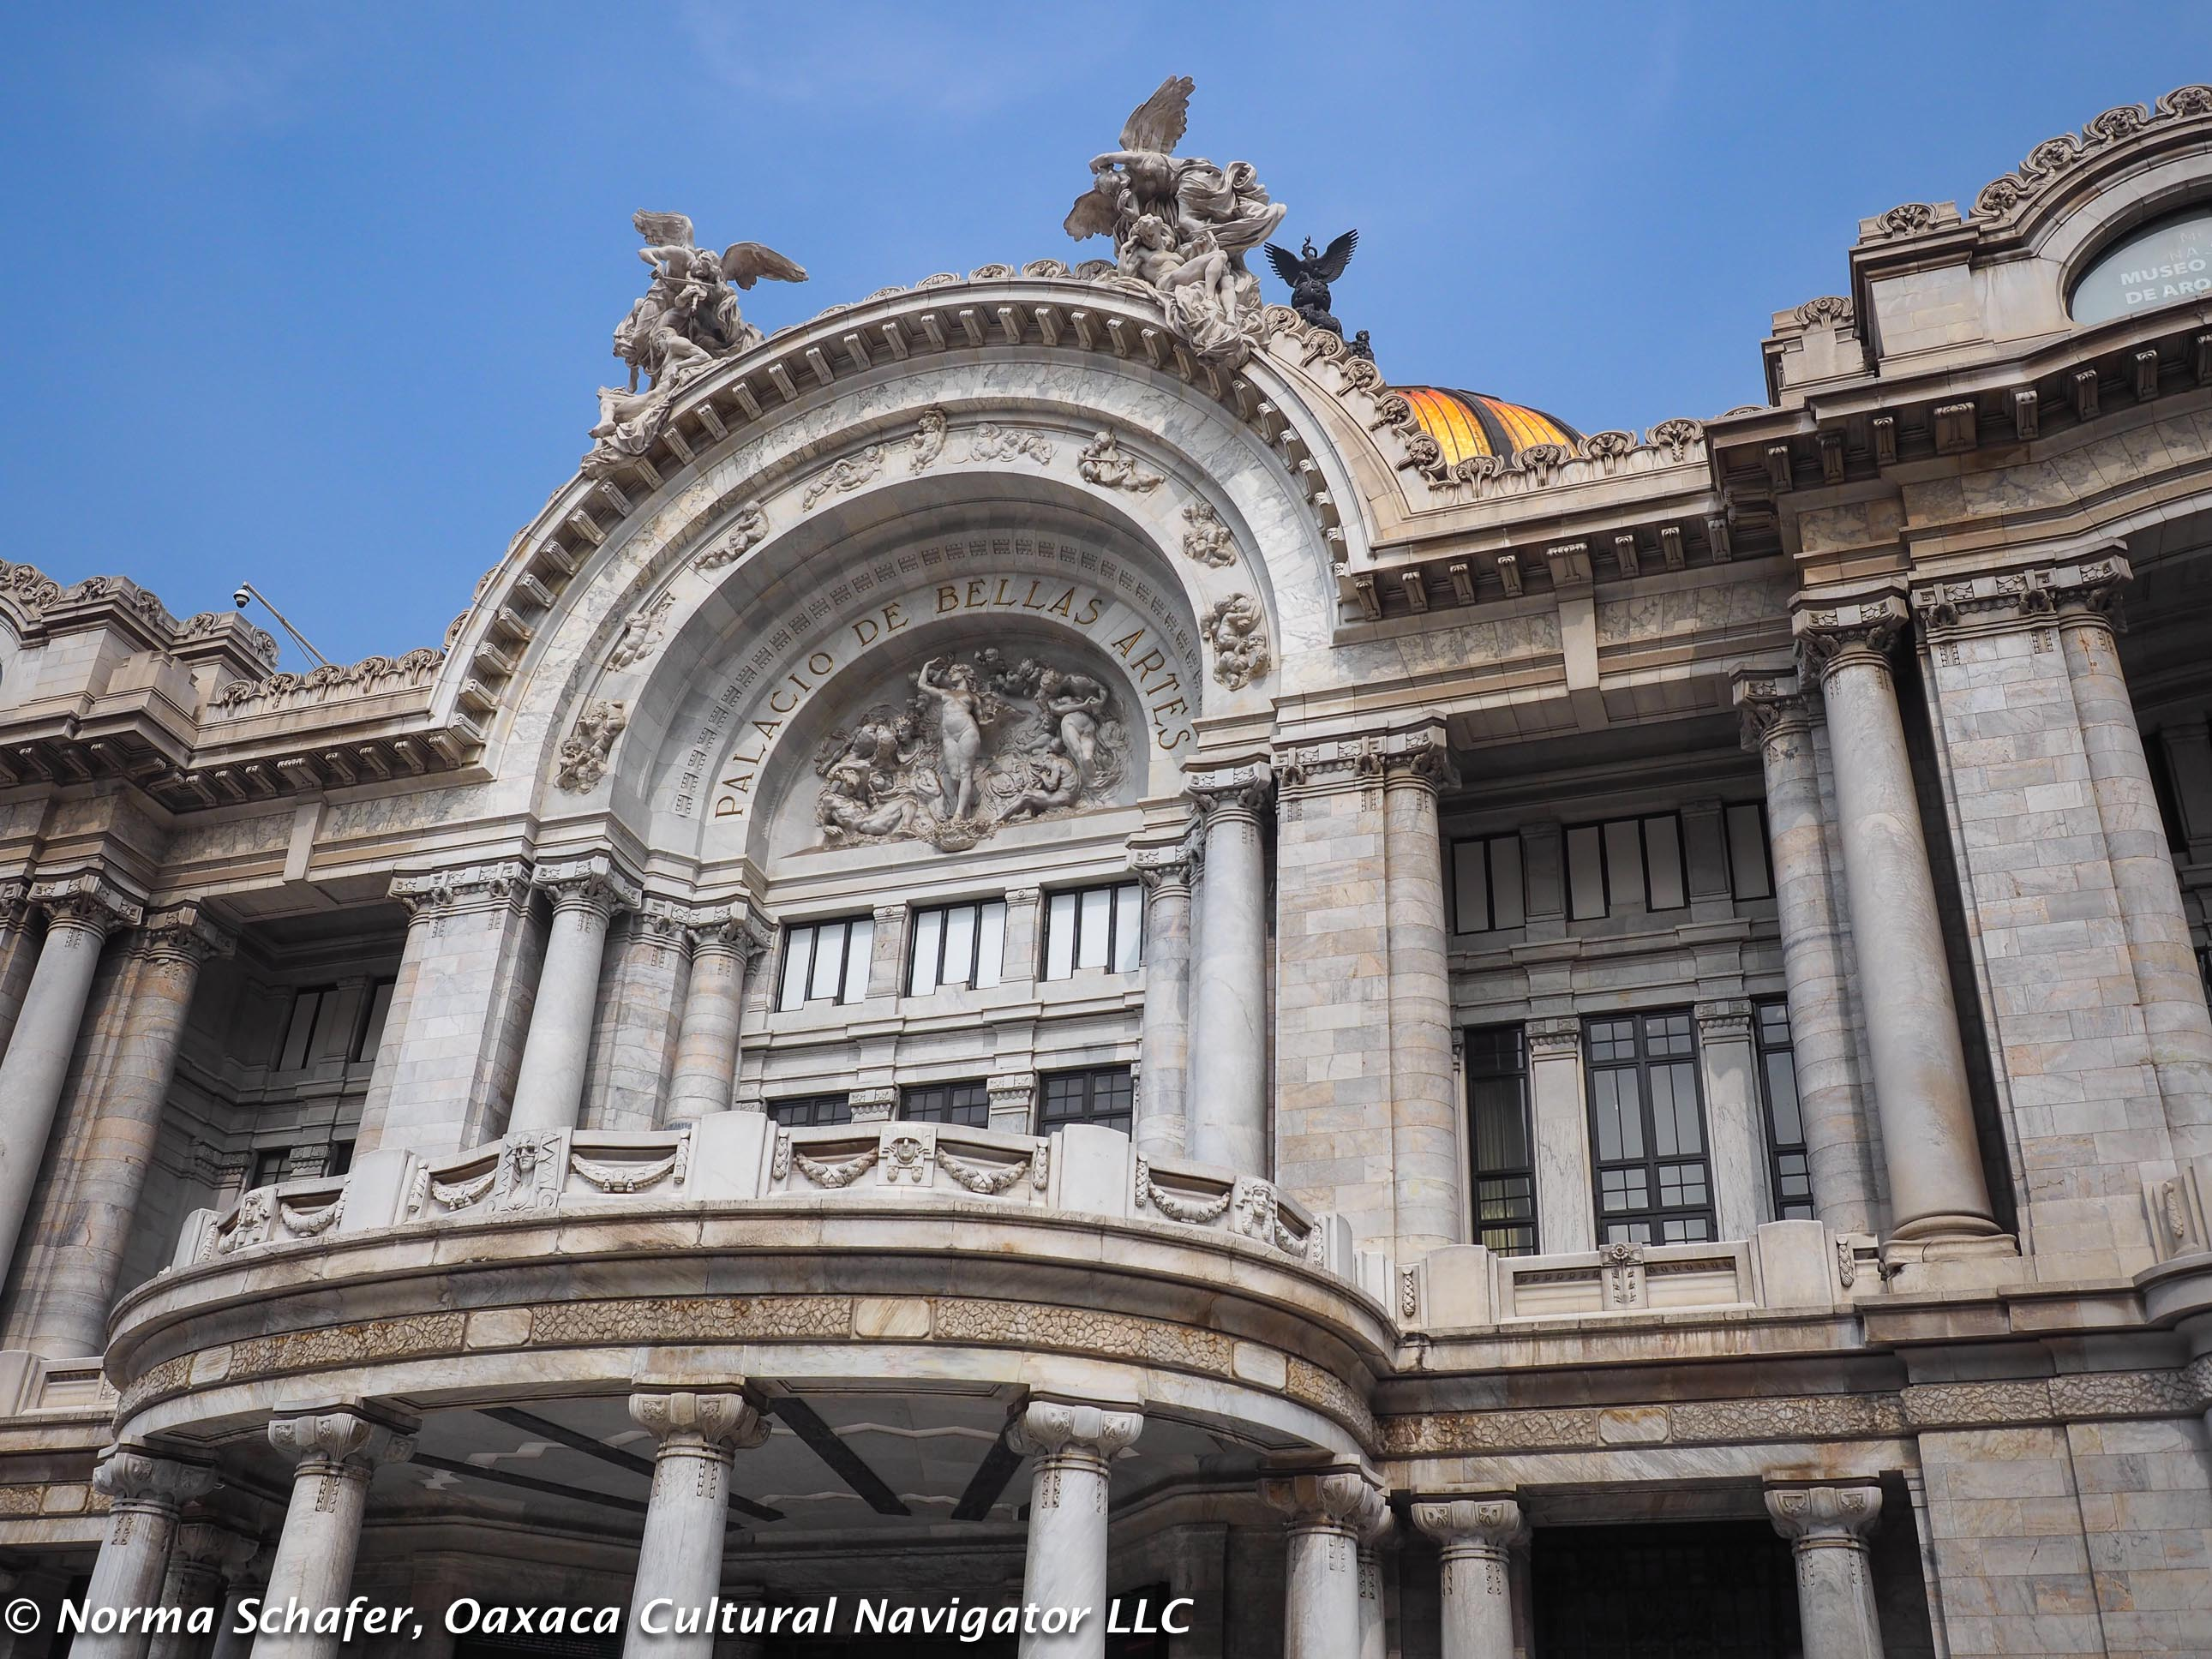 Palacio Bellas Artes built during Porfirio Diaz presidency